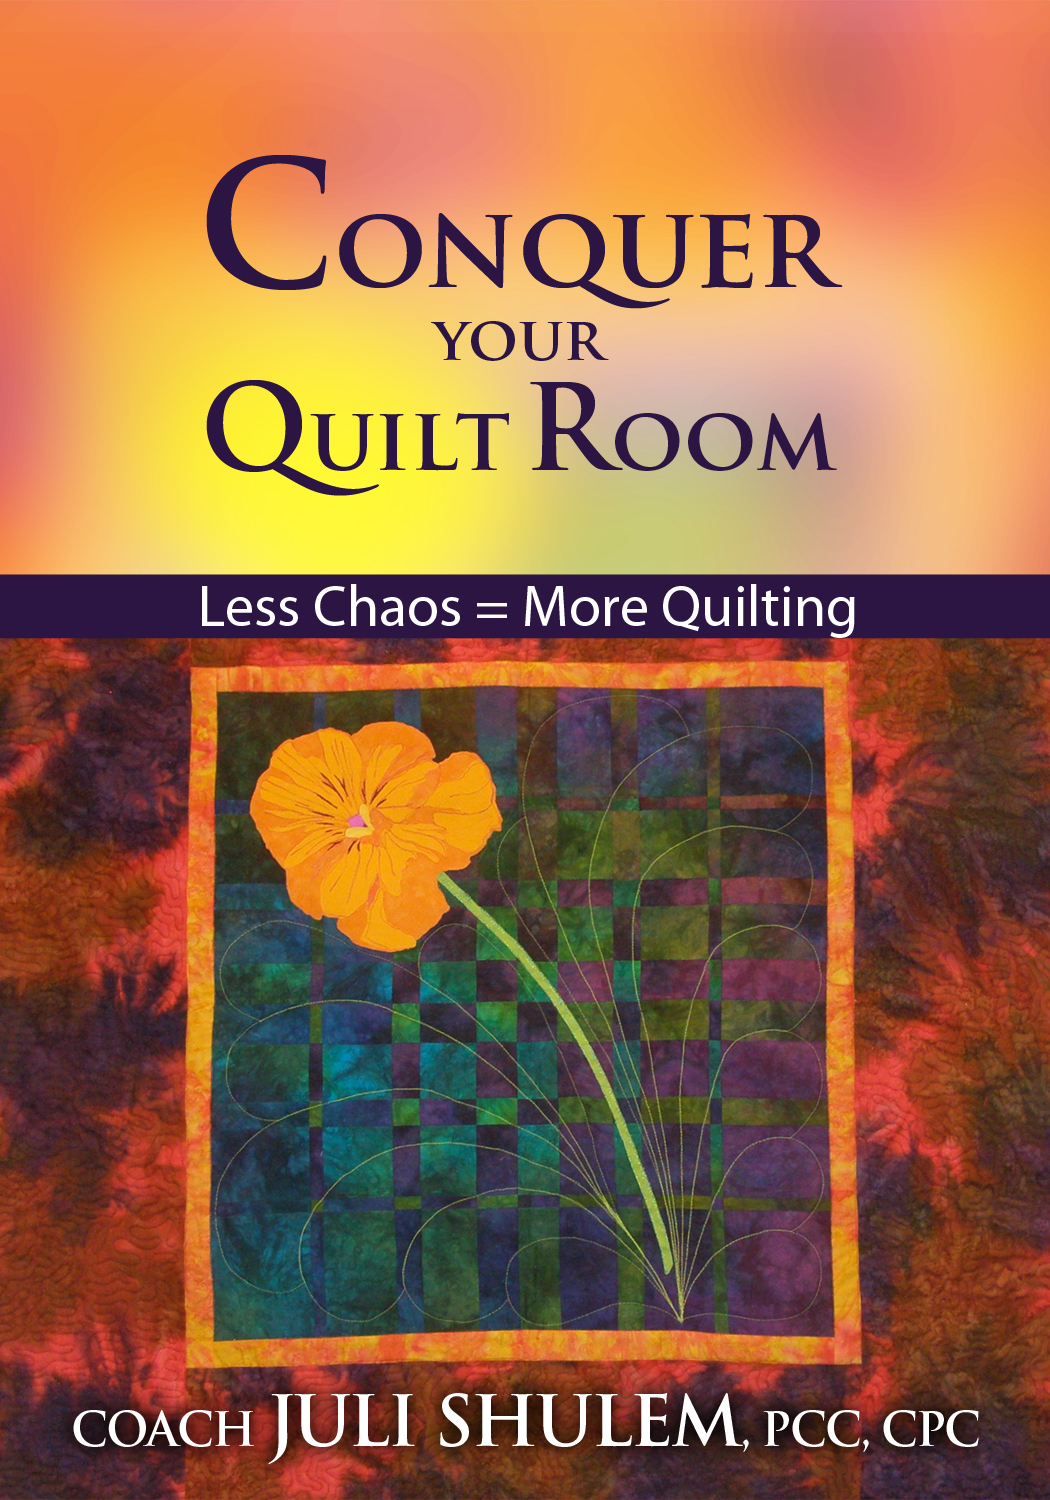 Conquer Your Quilt Room